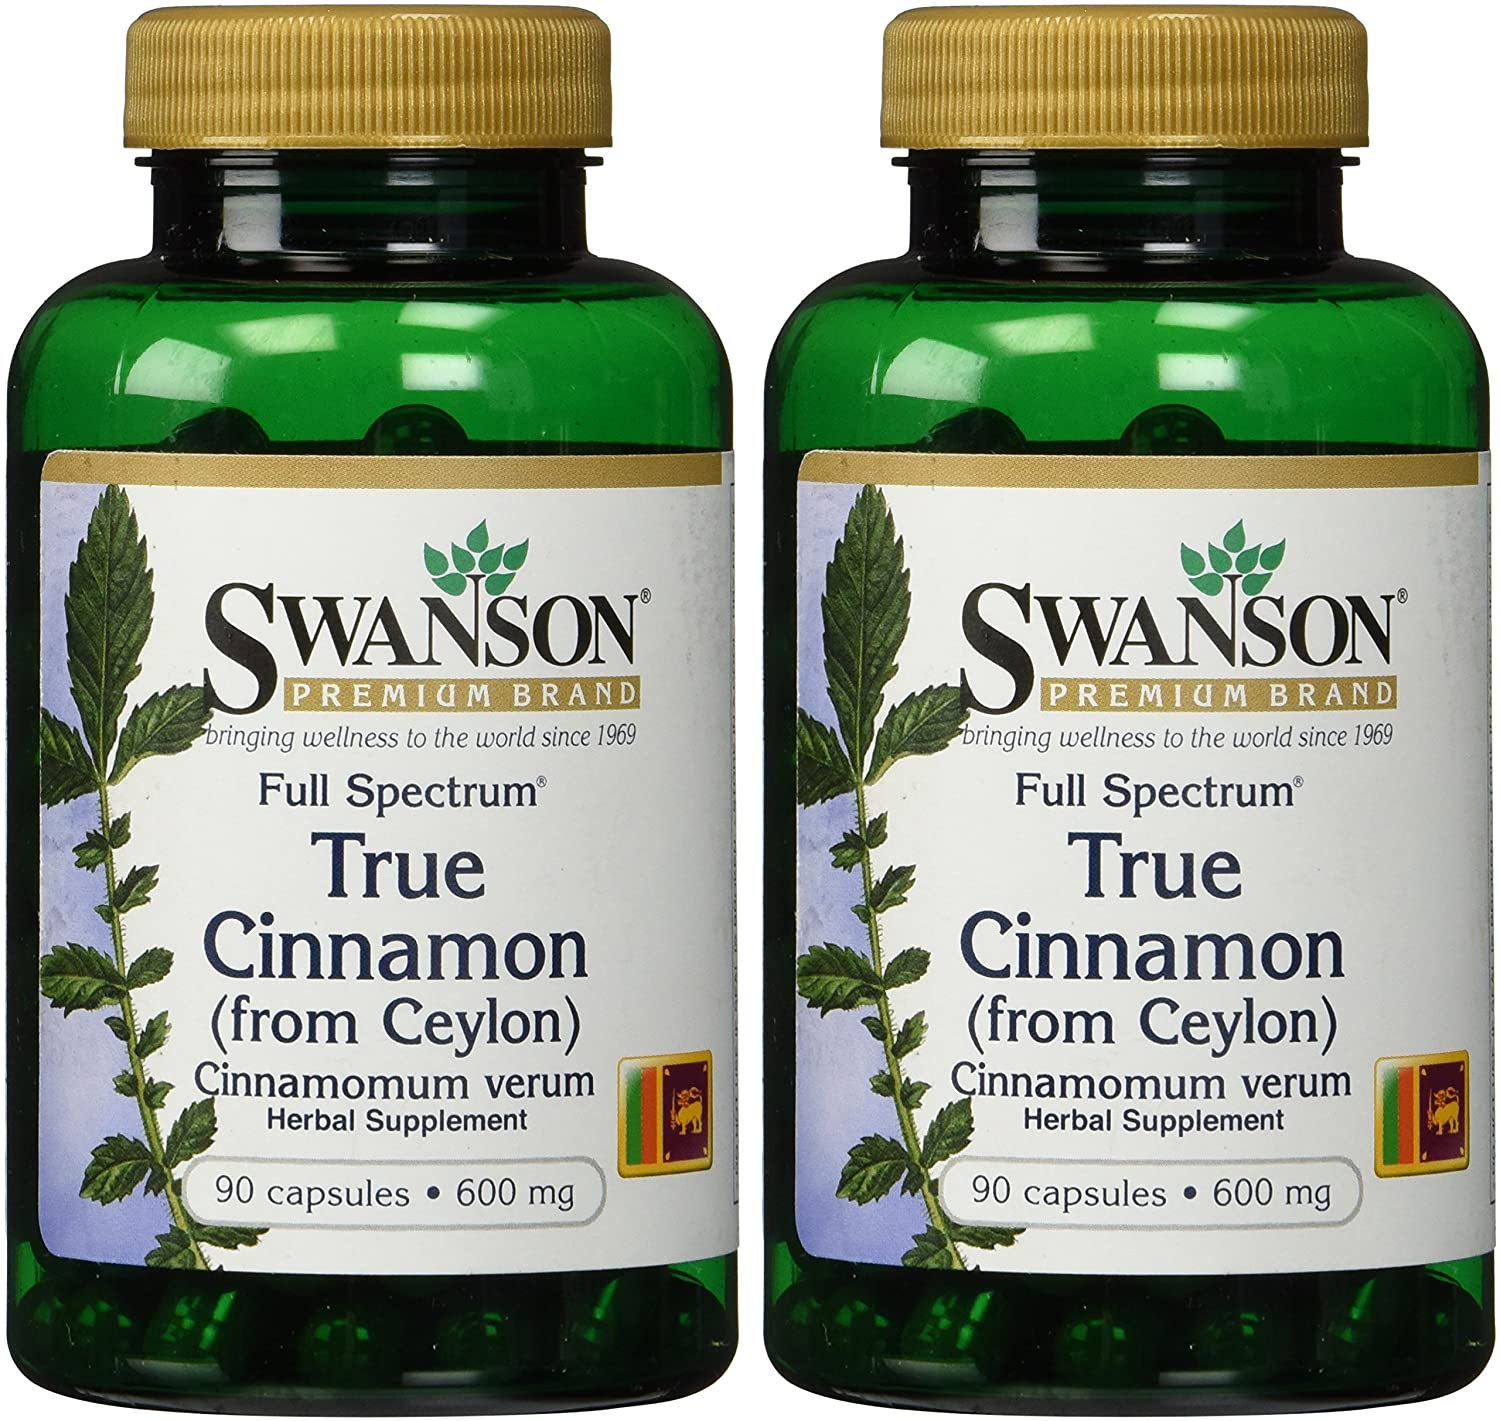 Swanson Premium Brand True Cinnamon 600mg — 2 Bottles each of 90 Capsules